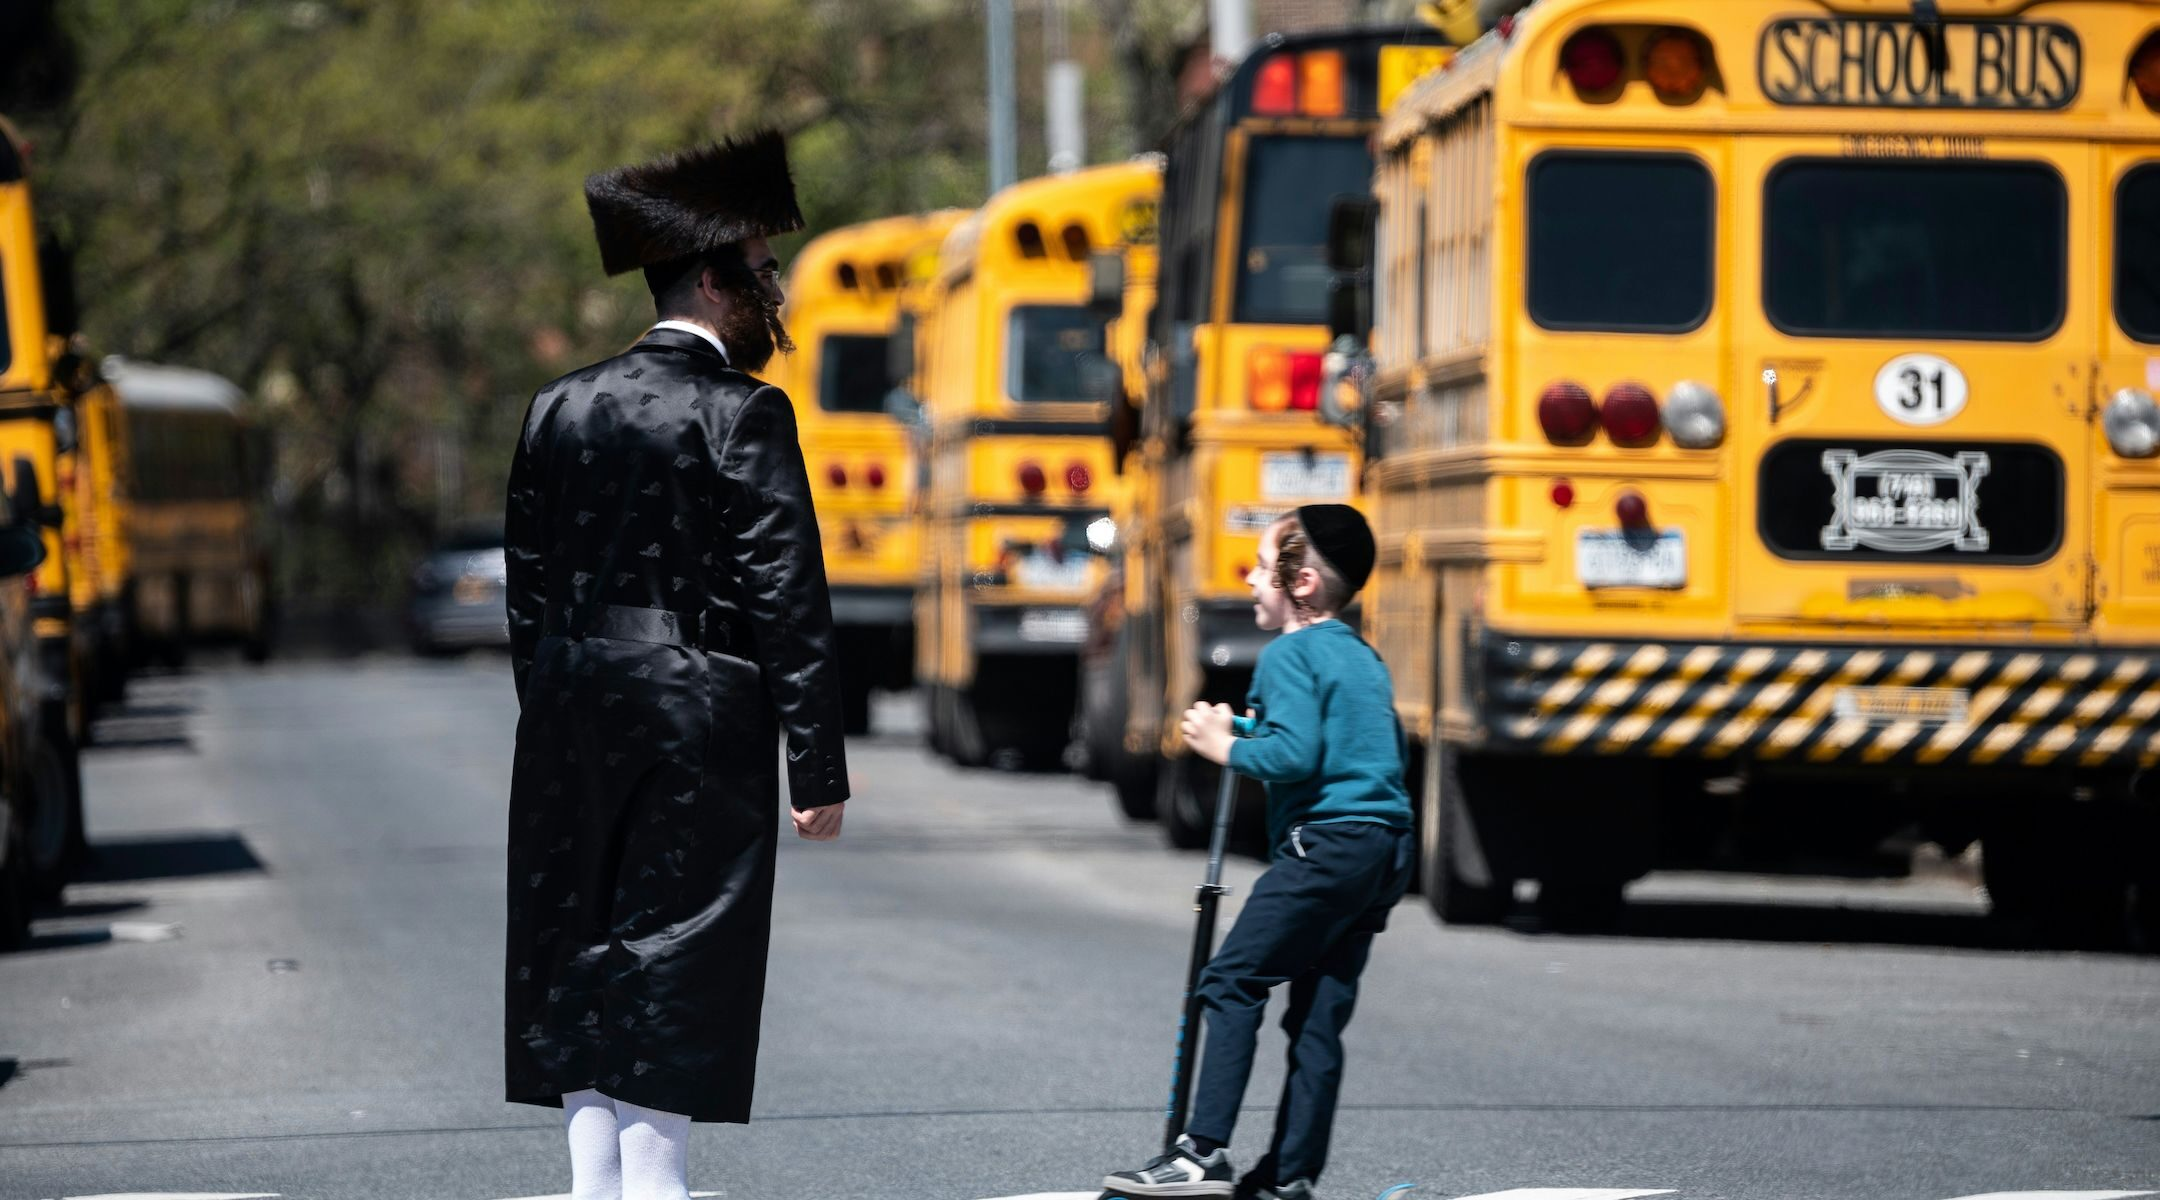 Yeshiva's To Remain Open As NYC Schools Close